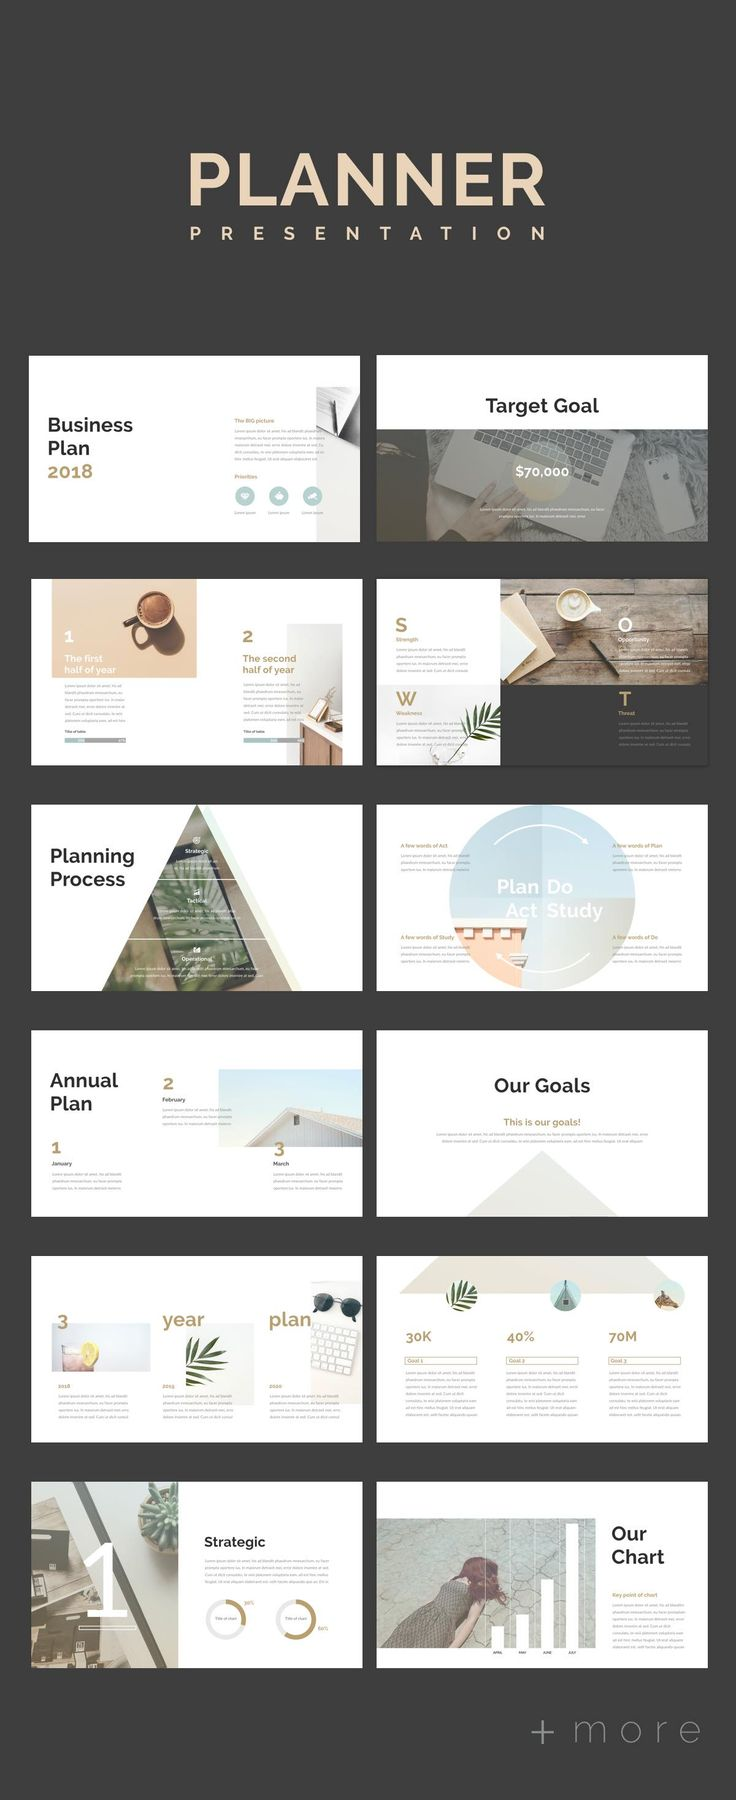 Simple Planner Presentation Template #presentation #powerpoint